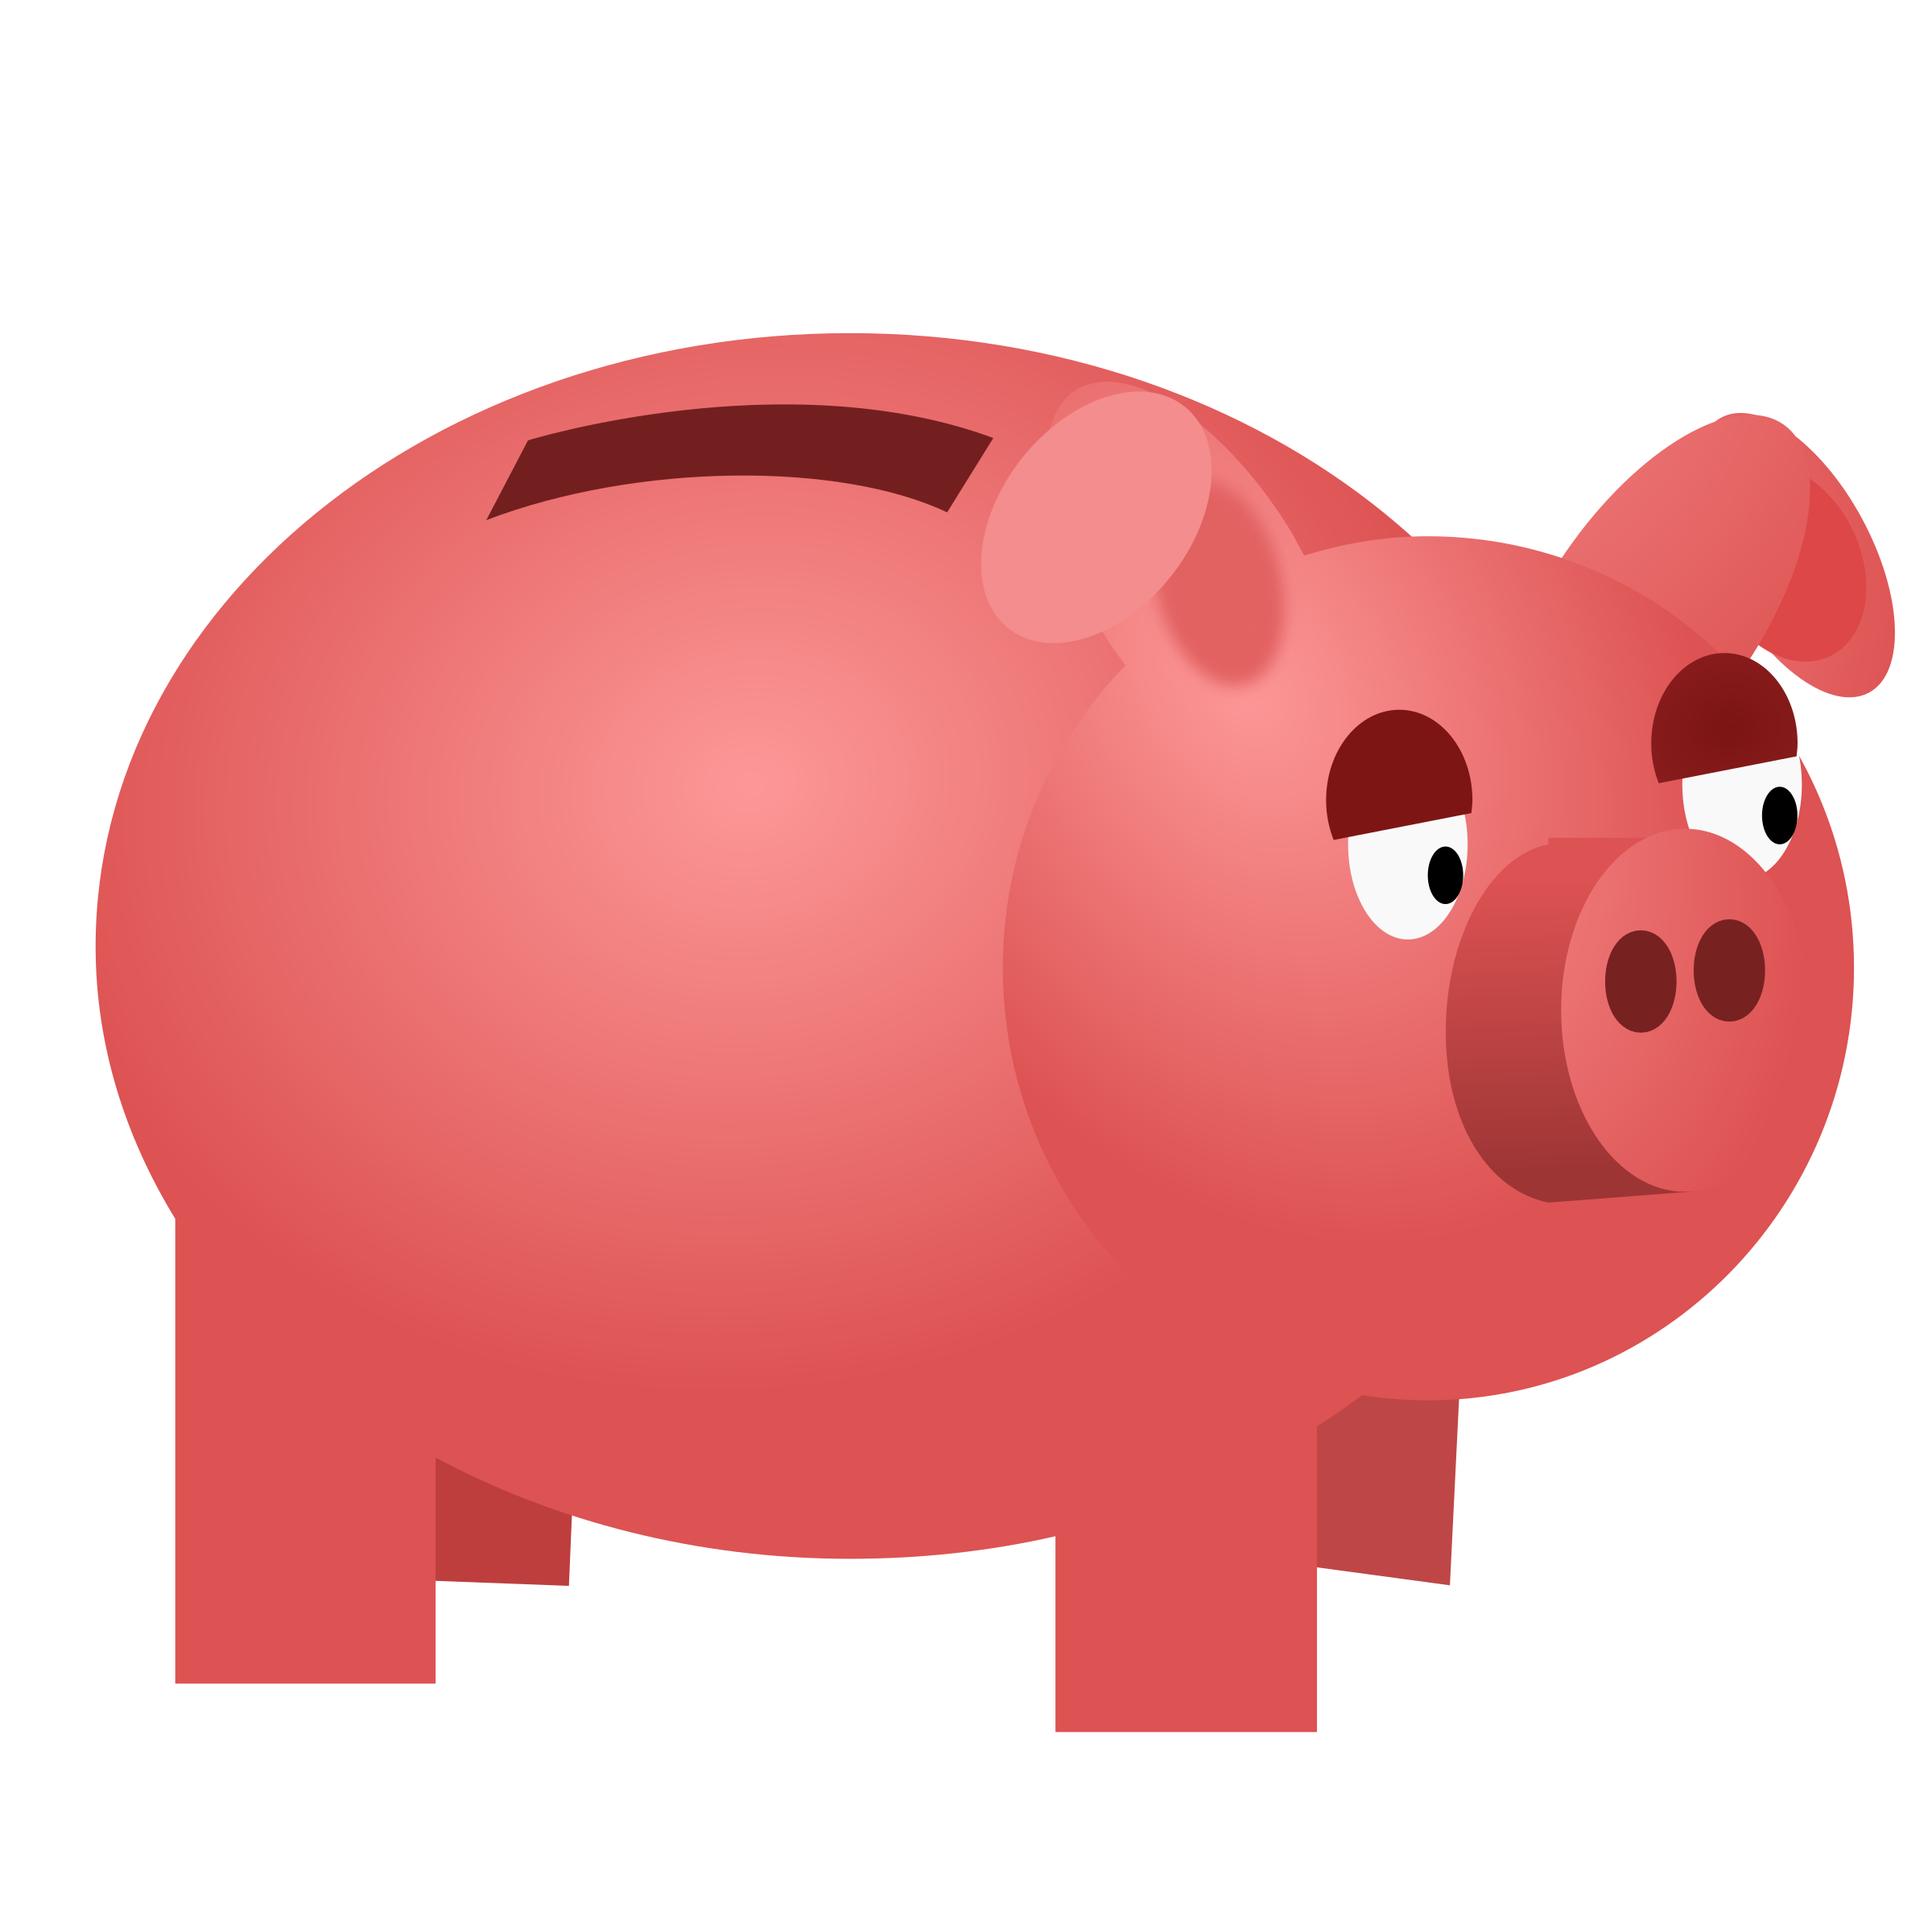 Clipart of bank jpg free library Clipart - Piggy bank jpg free library